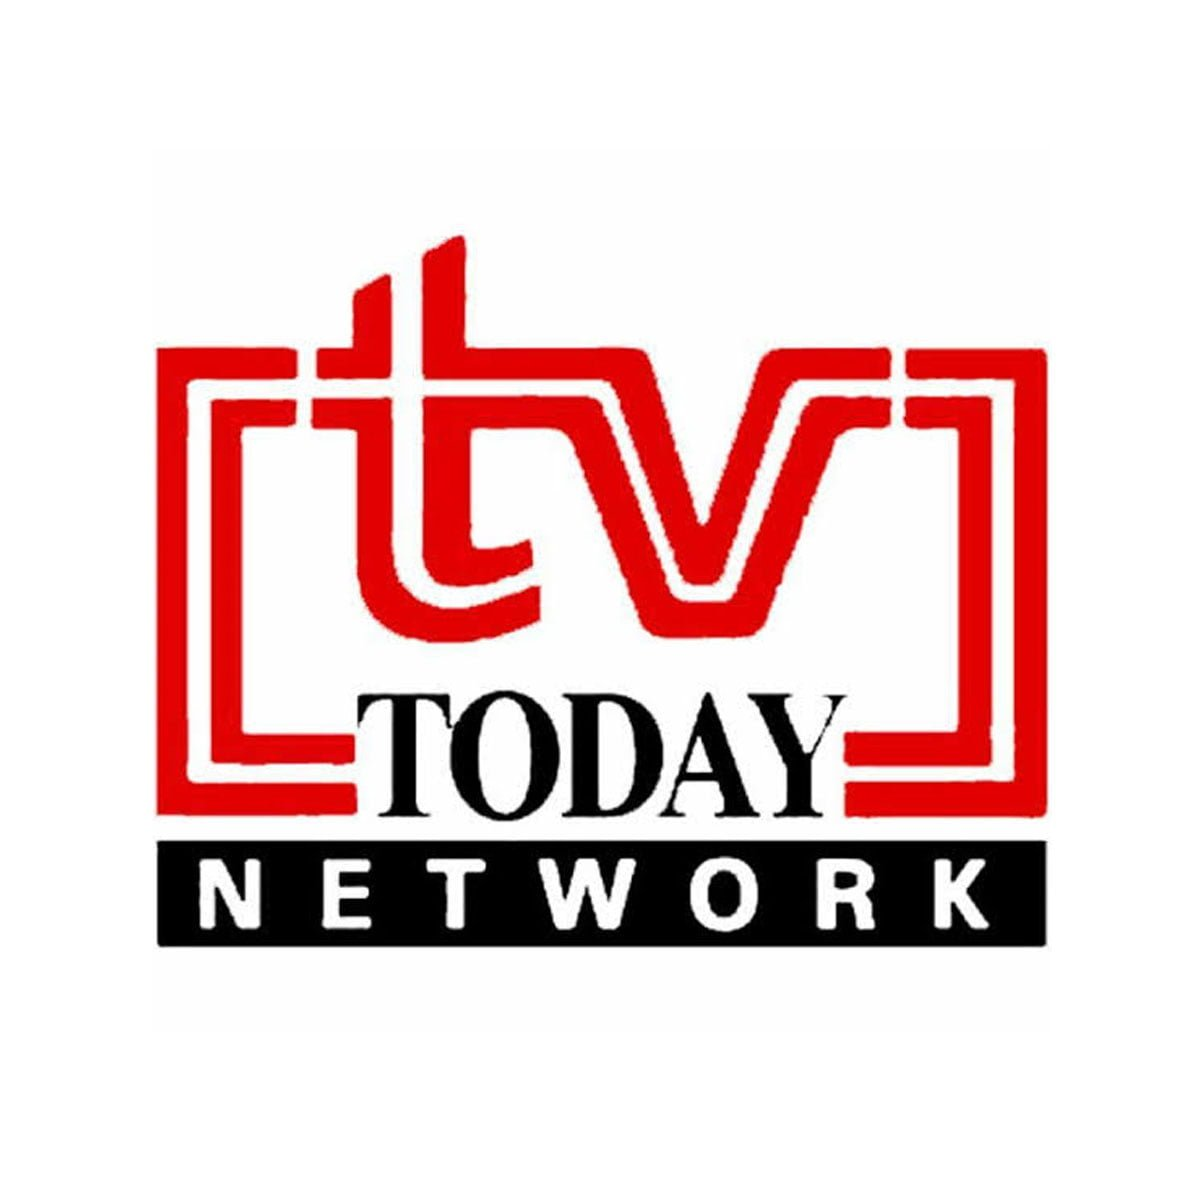 TV Today Network registers Rs 51.03 crores net profit in Q1 FY 19-20